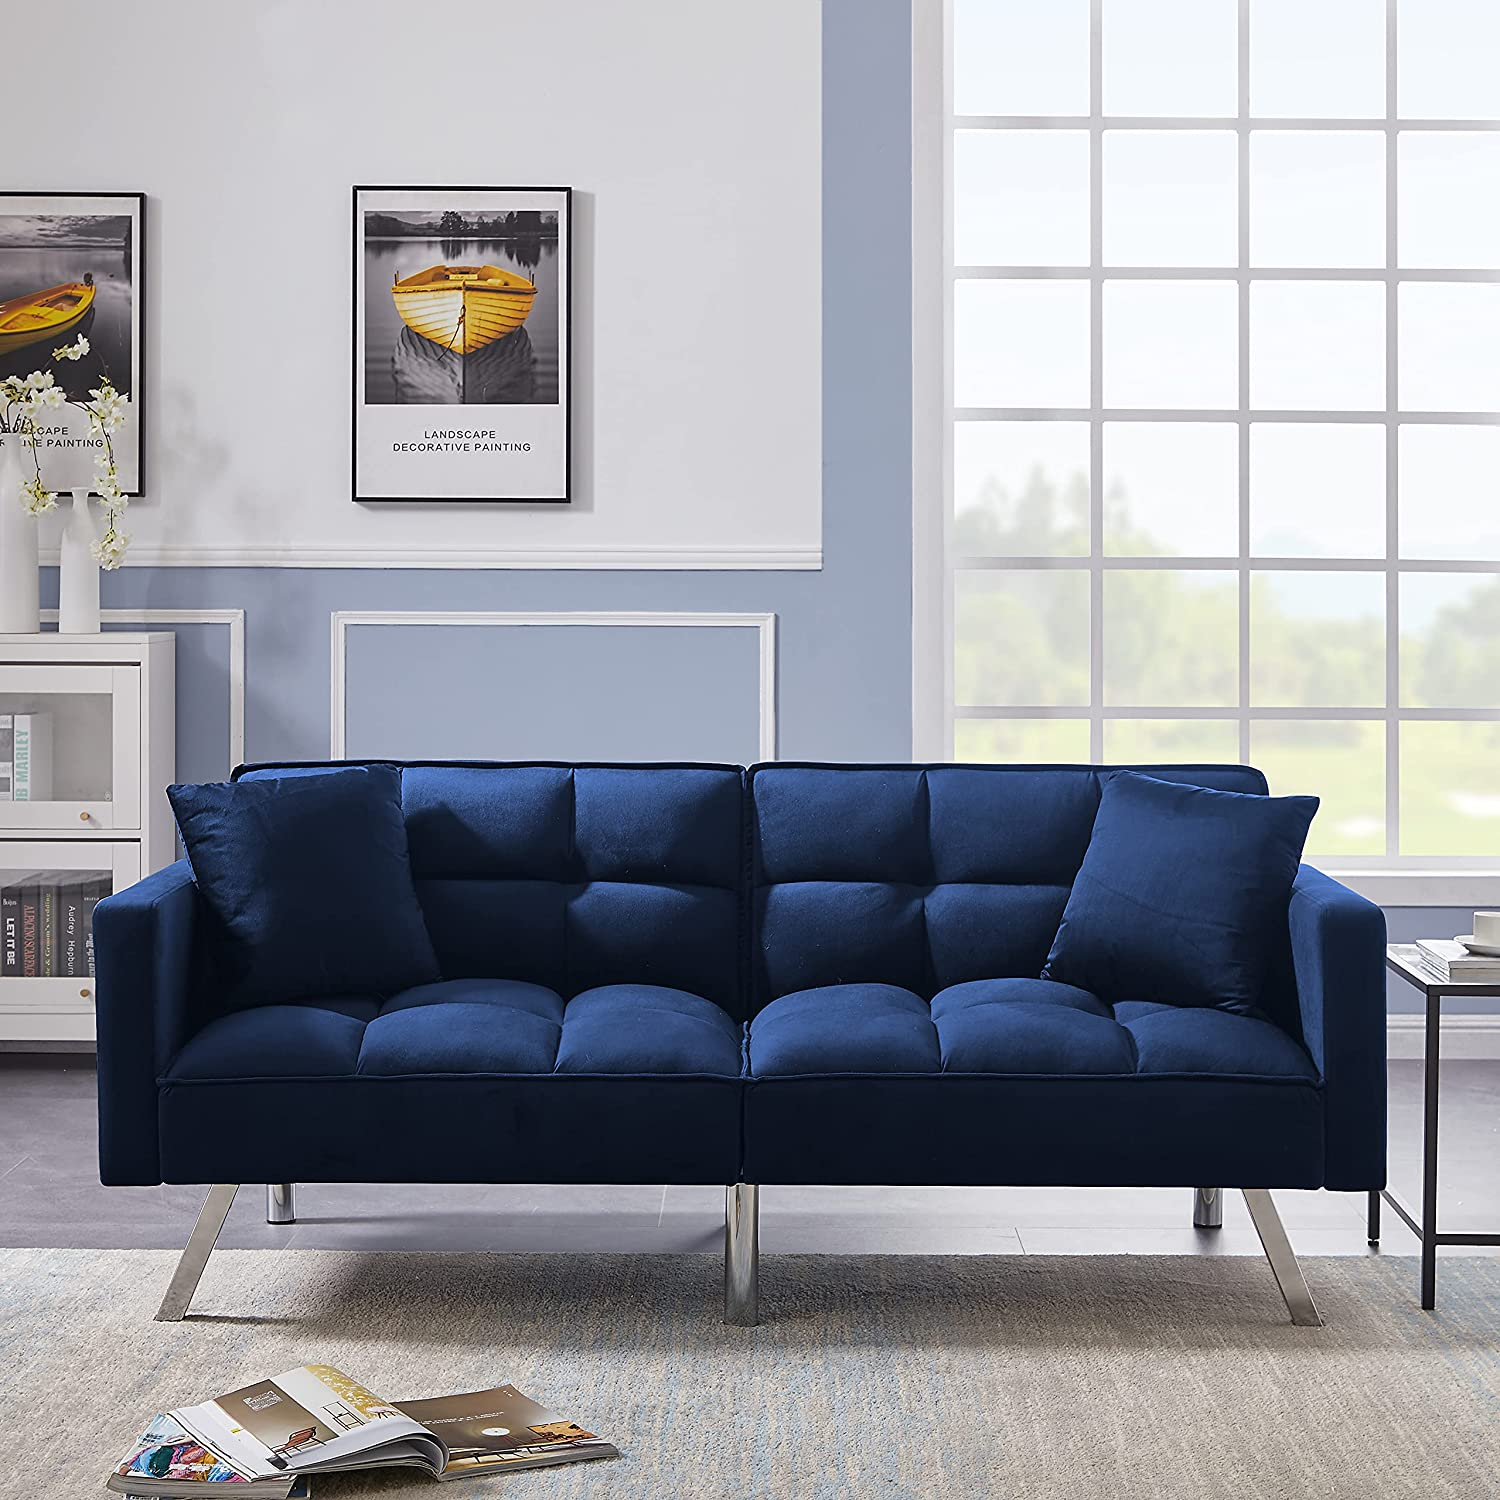 Futon Sofa Bed, Convertible Sleeper Sofa Velvet Futon with 2 Pillows, Modern Loveseat Couch Furniture with Armrests Metal Legs for Living Room, Bedroom, Apartment and Small Space (Navy Blue)